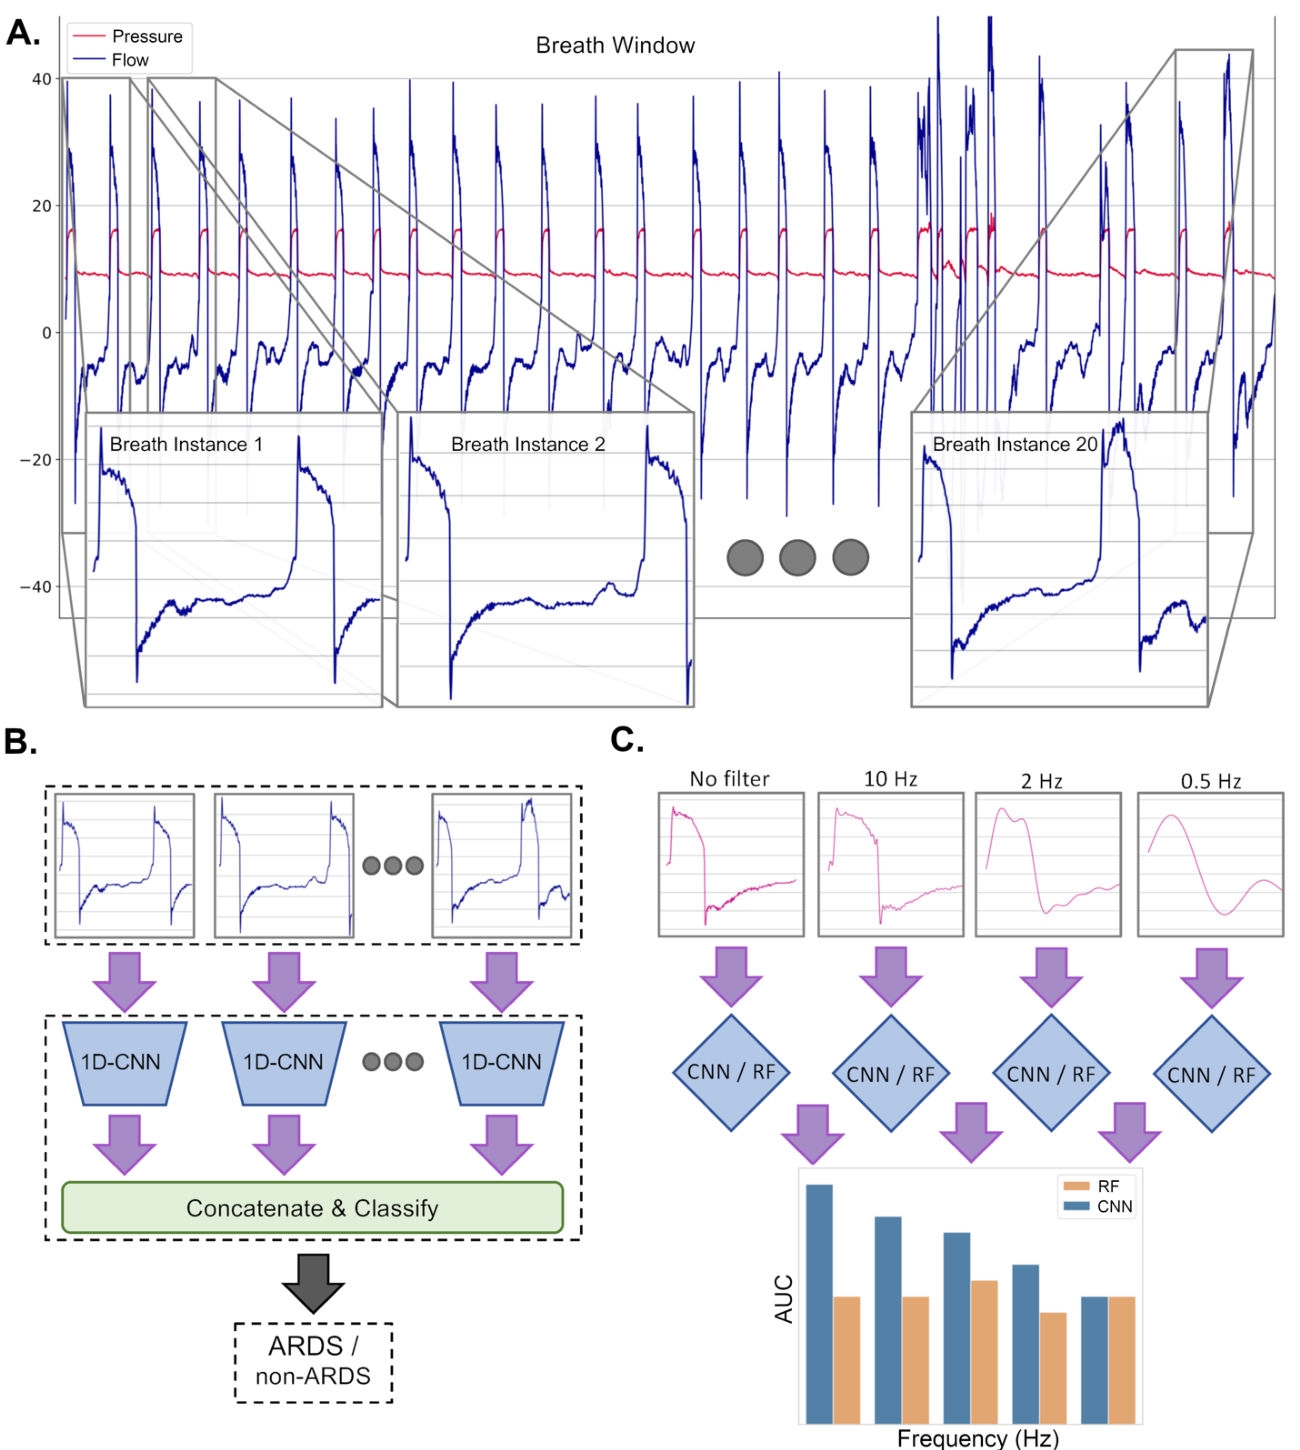 Figure 1 for Deep Learning-Based Detection of the Acute Respiratory Distress Syndrome: What Are the Models Learning?